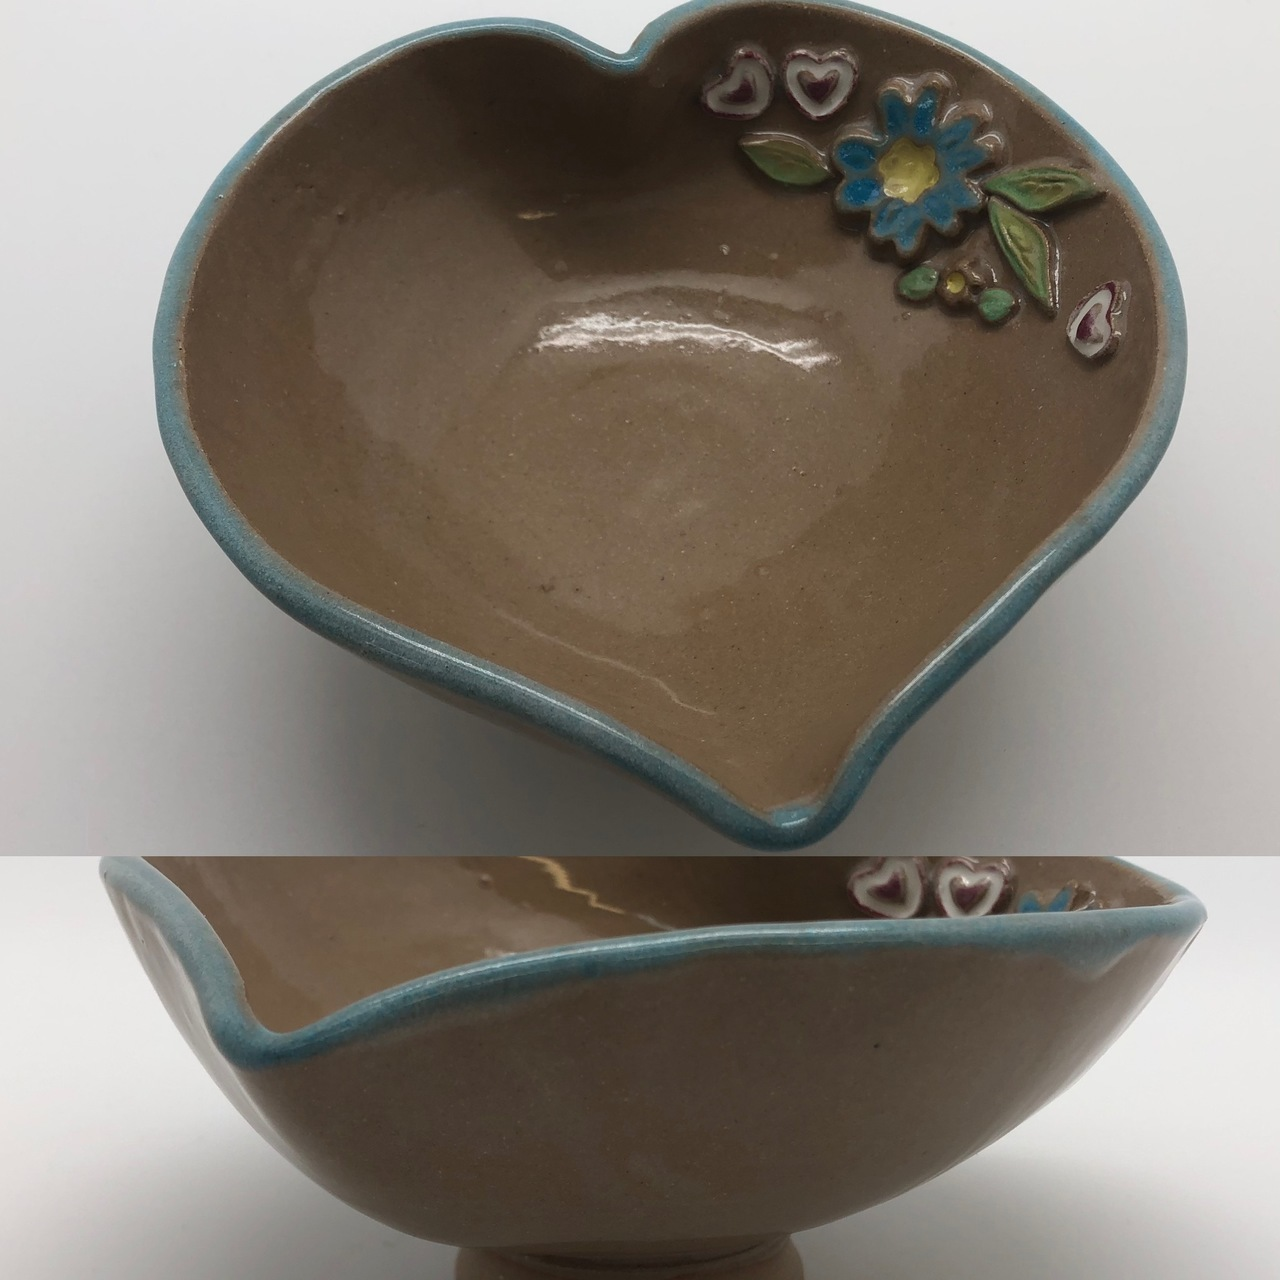 Heart Shaped Bowl with Flowers